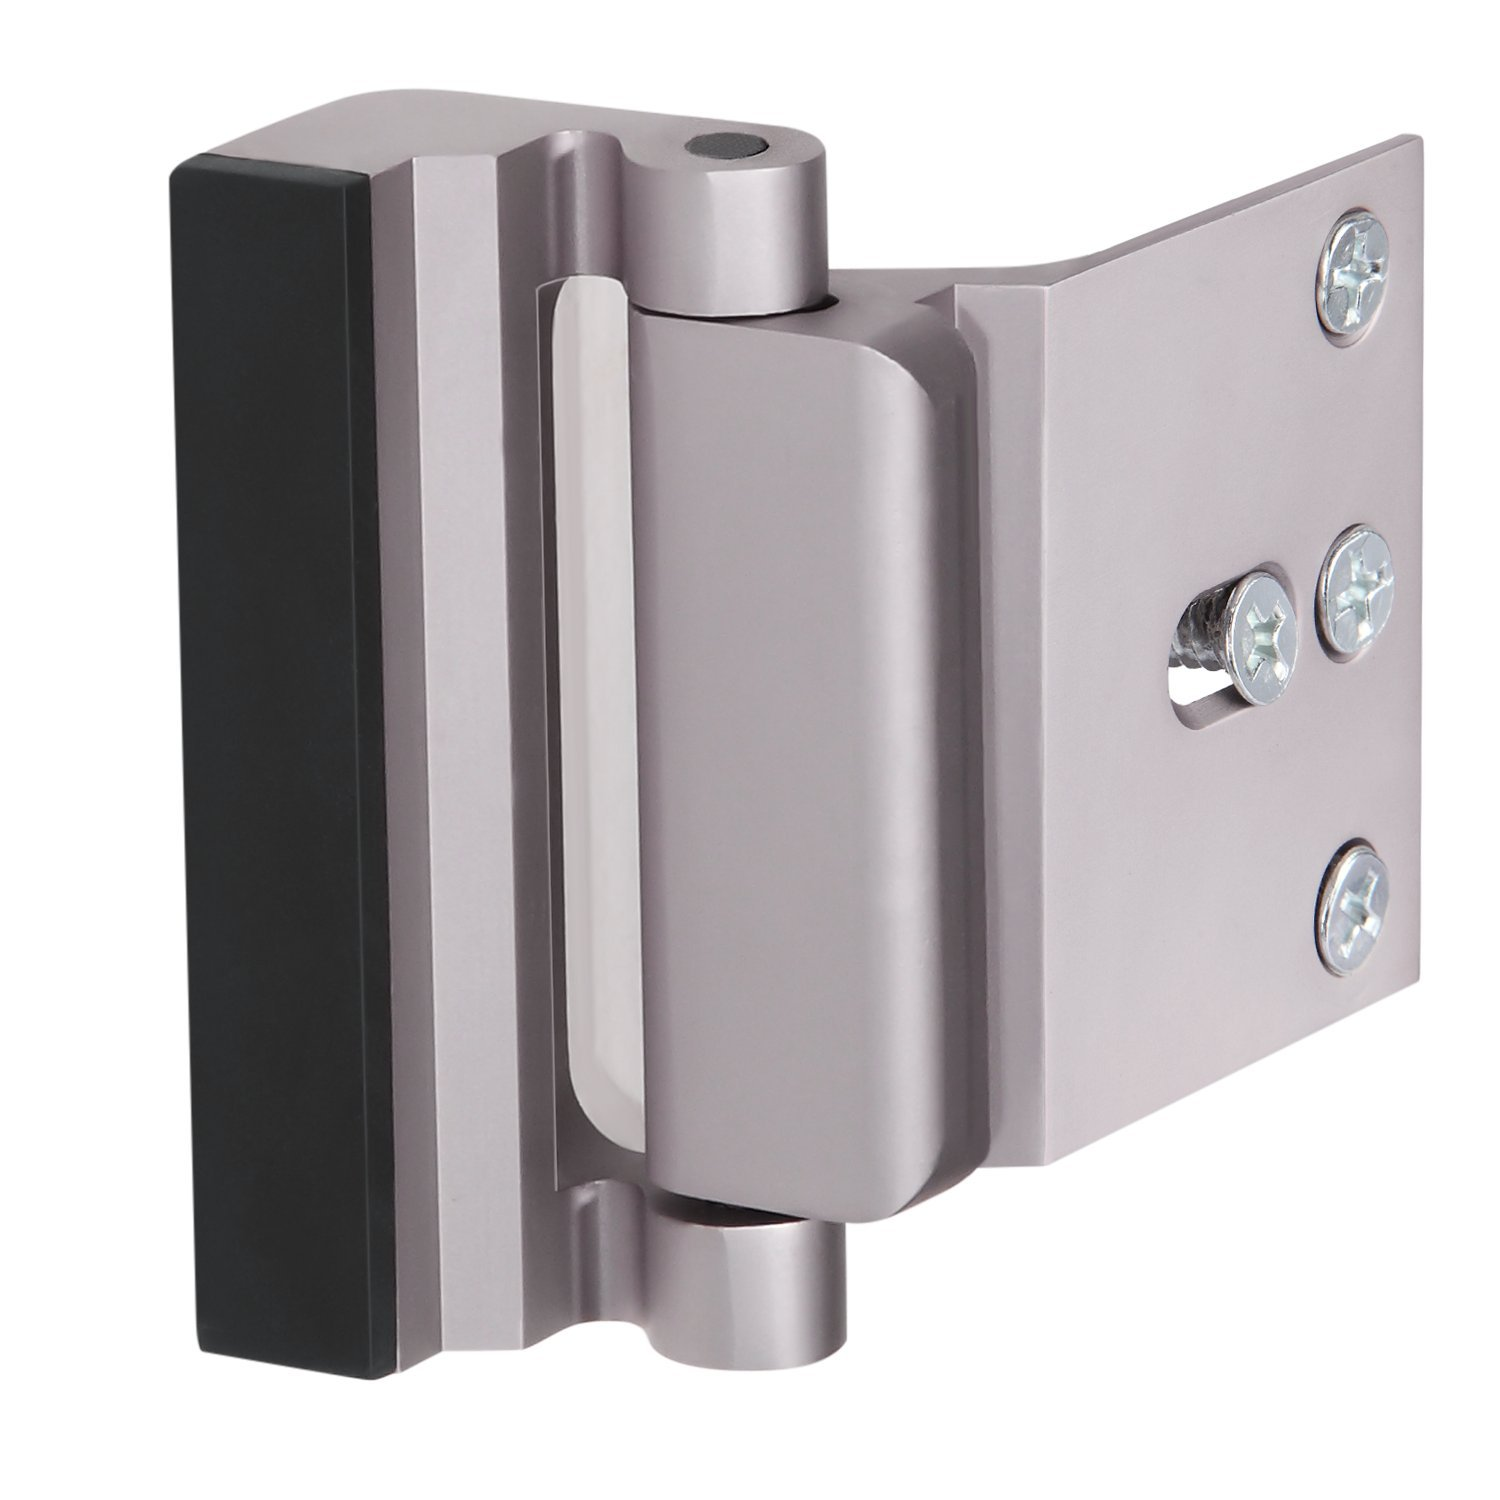 Extra High Security Door Reinforcement Lock - Protect Your Home Against Unauthorized Entry and Exit, Compatible with All Inswing Doors - by Wasserstein